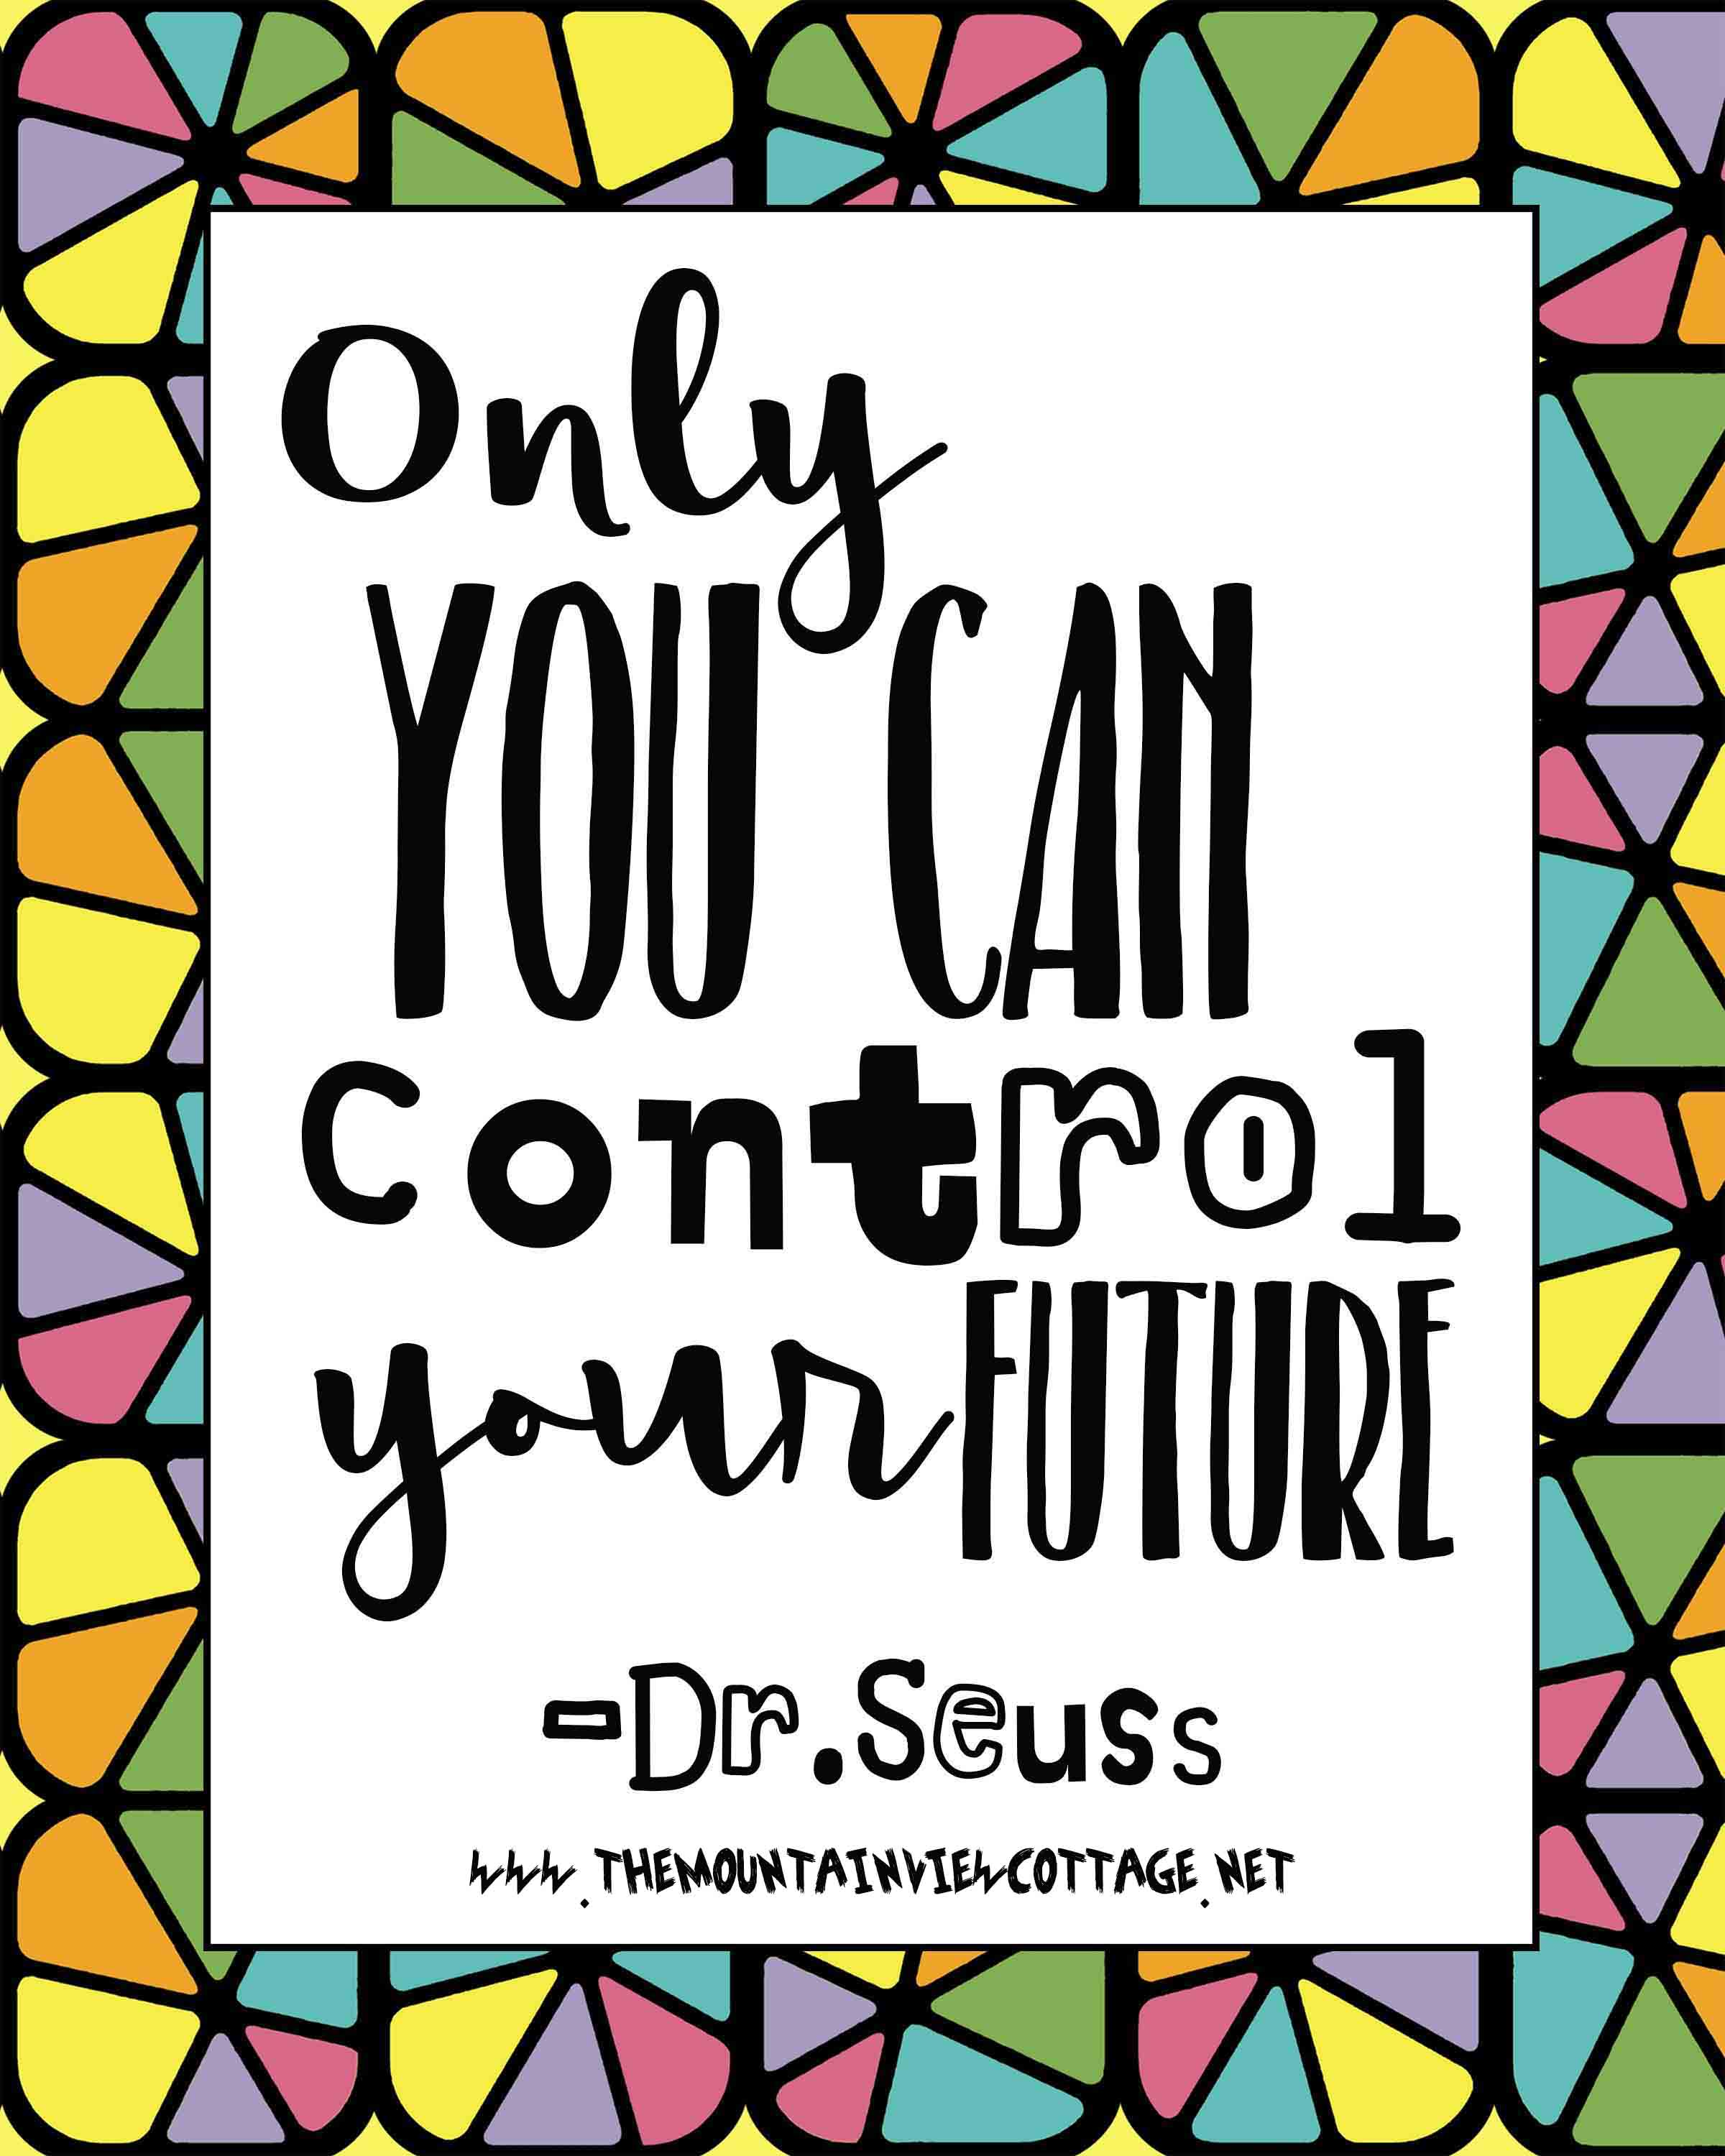 Dr.Suess Quotes for Graduation-only you can control your future